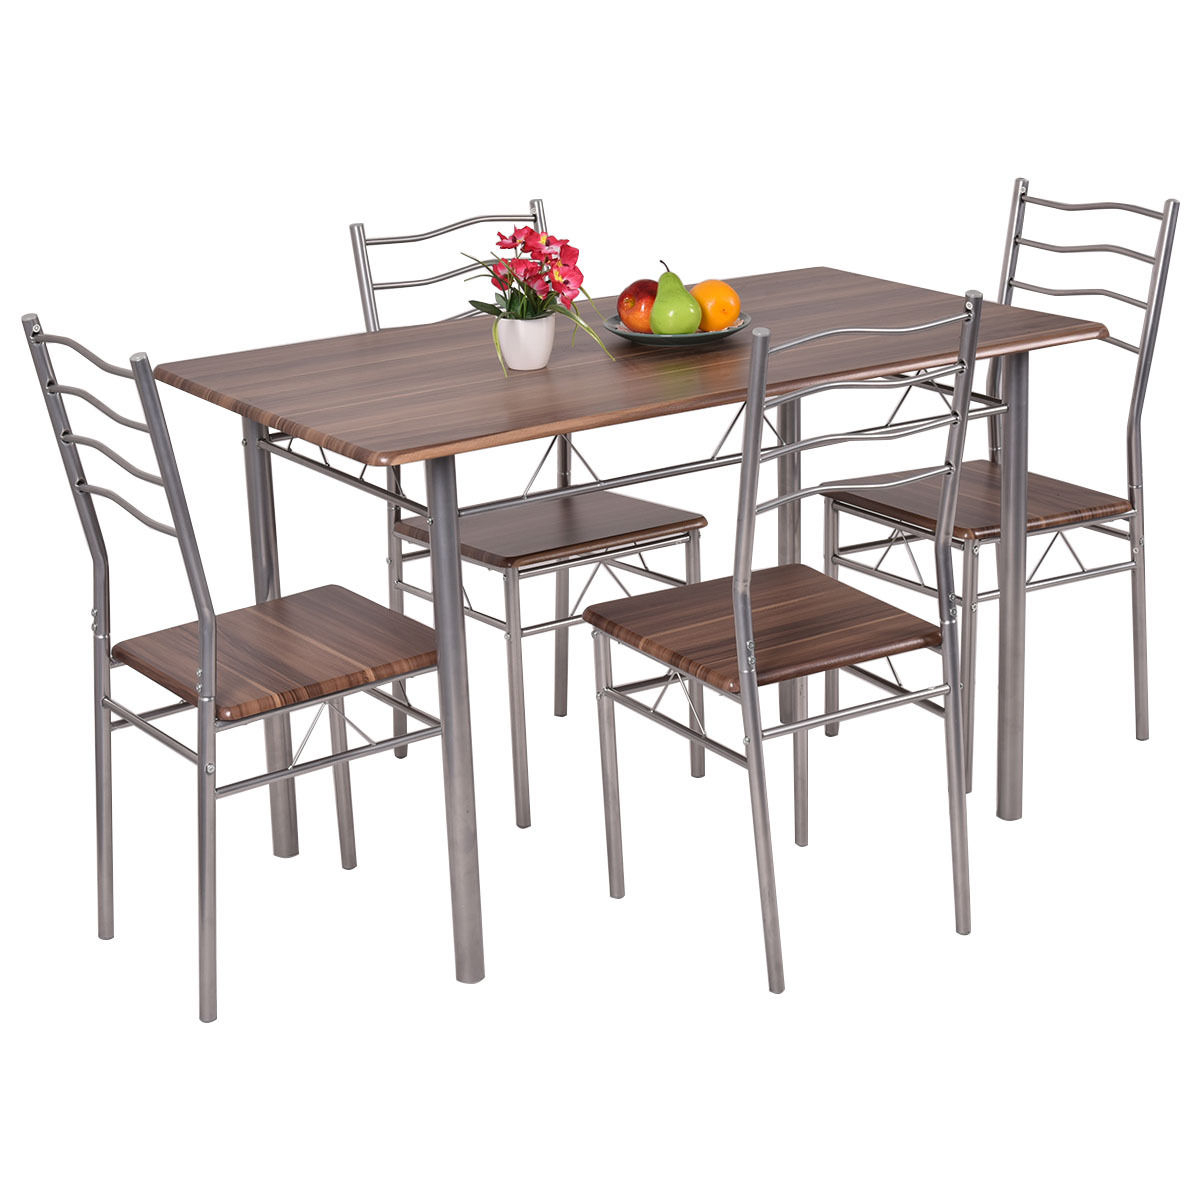 Inspiration about Tms Mason 5 Piece Cross Back Dining Set, Multiple Colors – Walmart Intended For Trendy Cargo 5 Piece Dining Sets (#10 of 20)